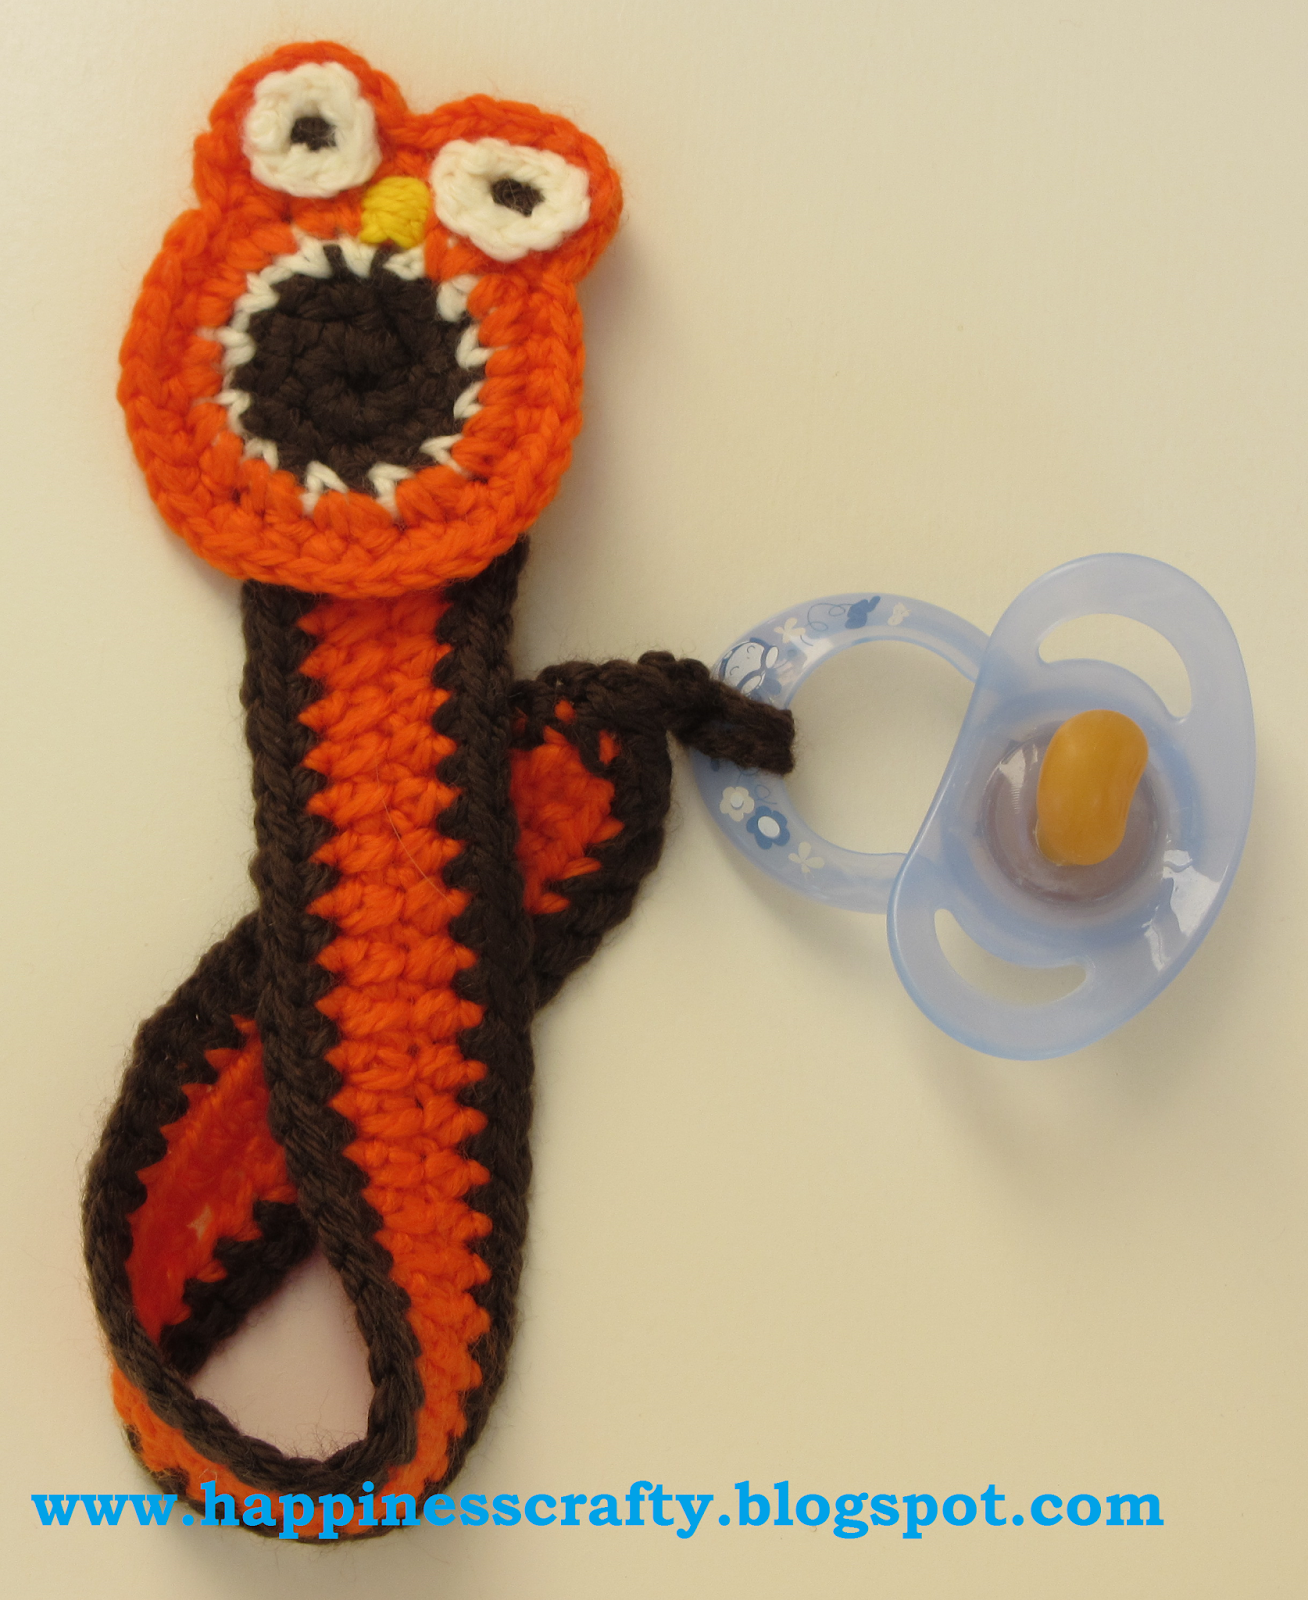 Happiness Crafty: Owl Pacifier Holder ~ Free Crochet ...